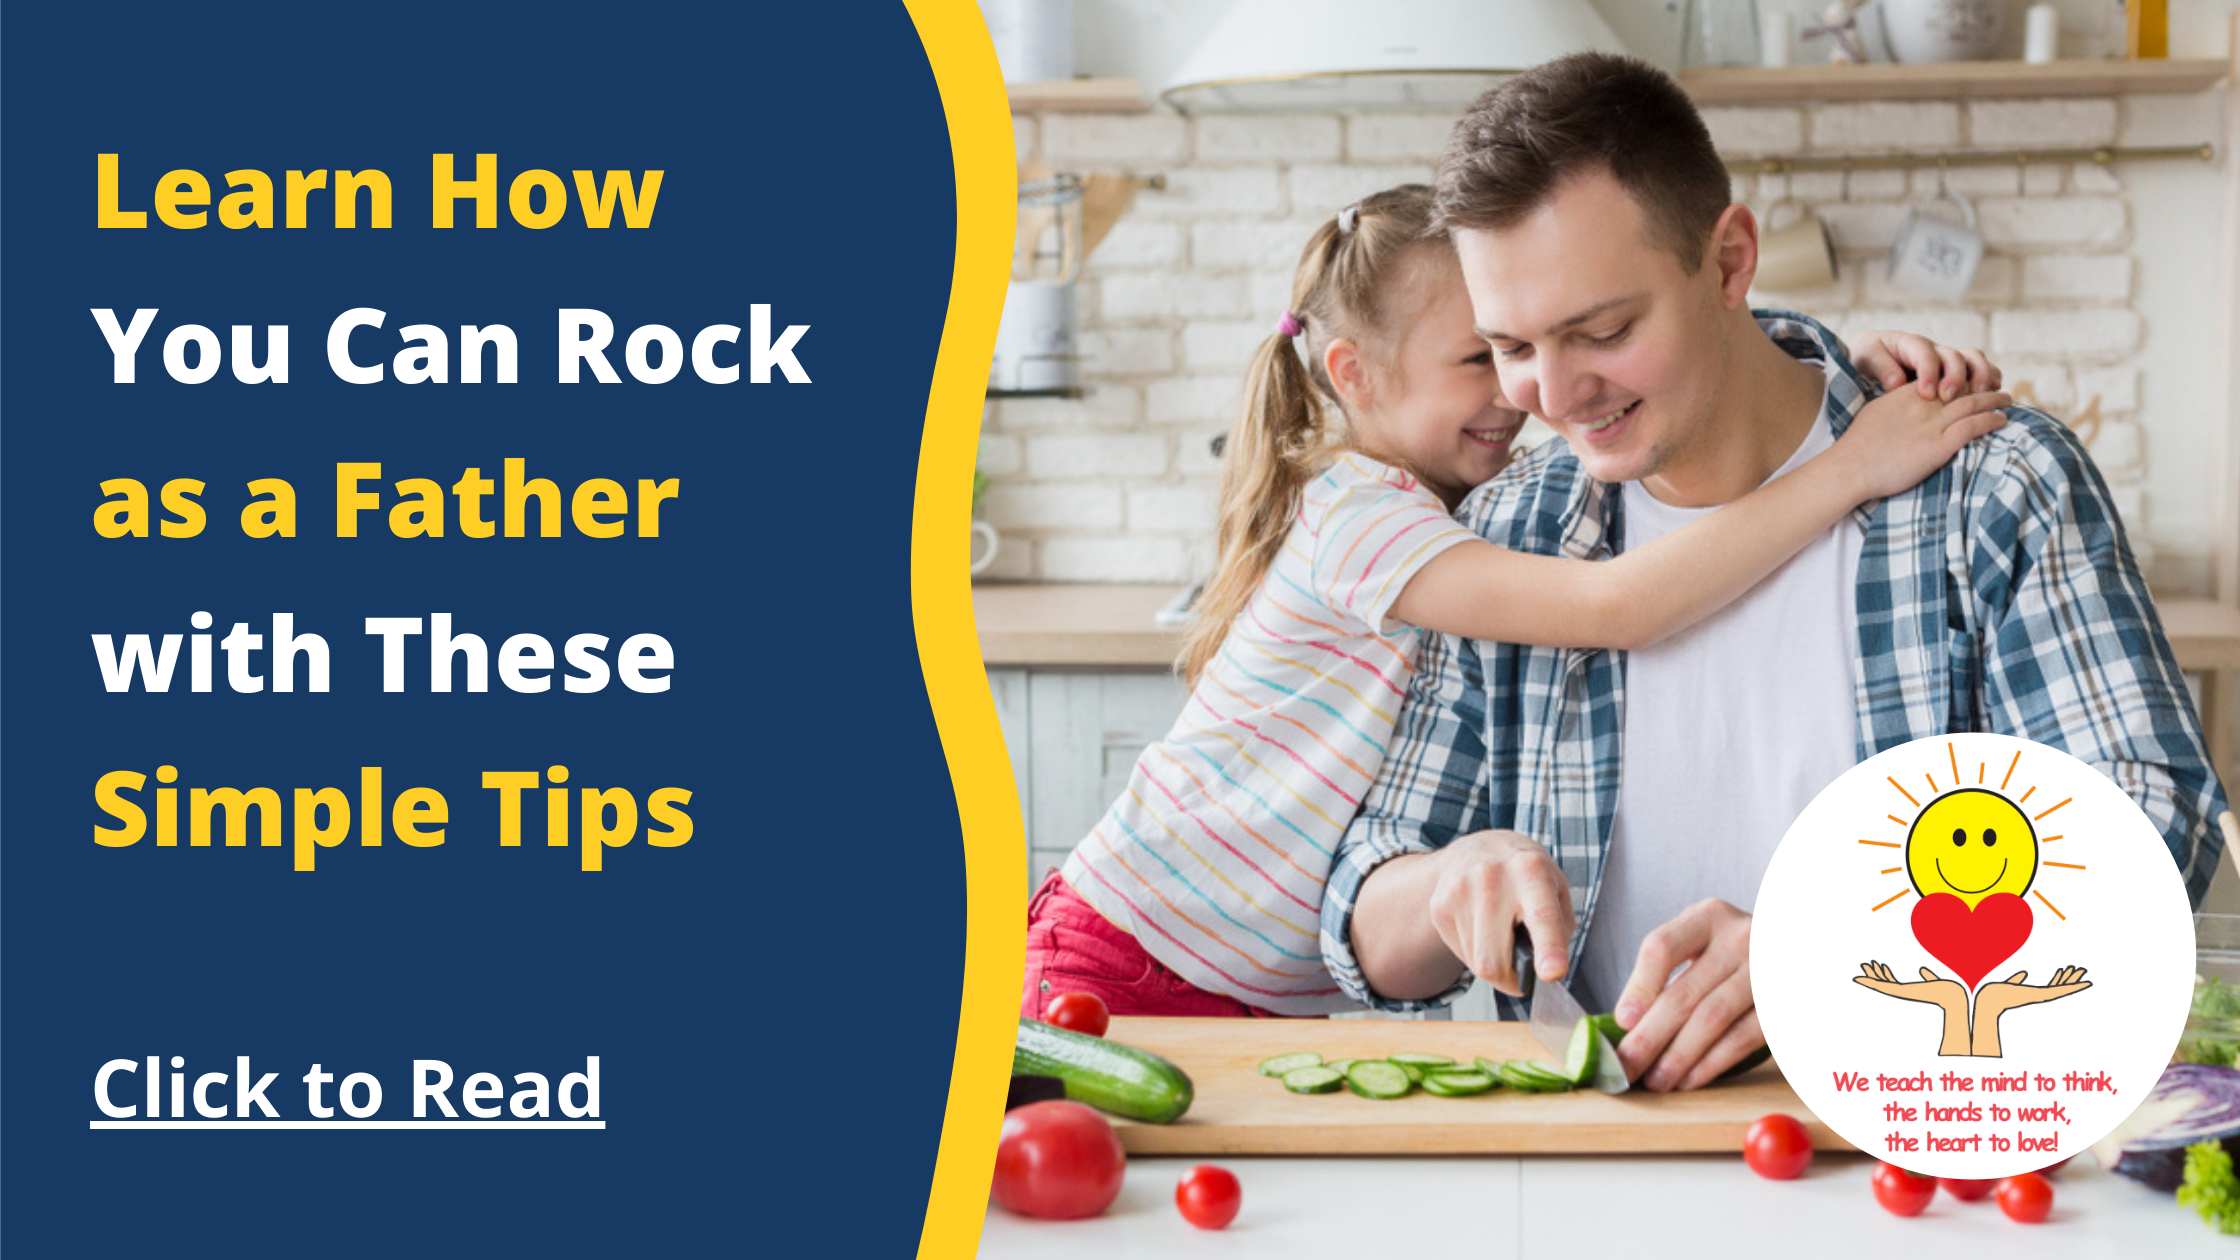 Learn How You Can Rock a a Father with These Simple Tips